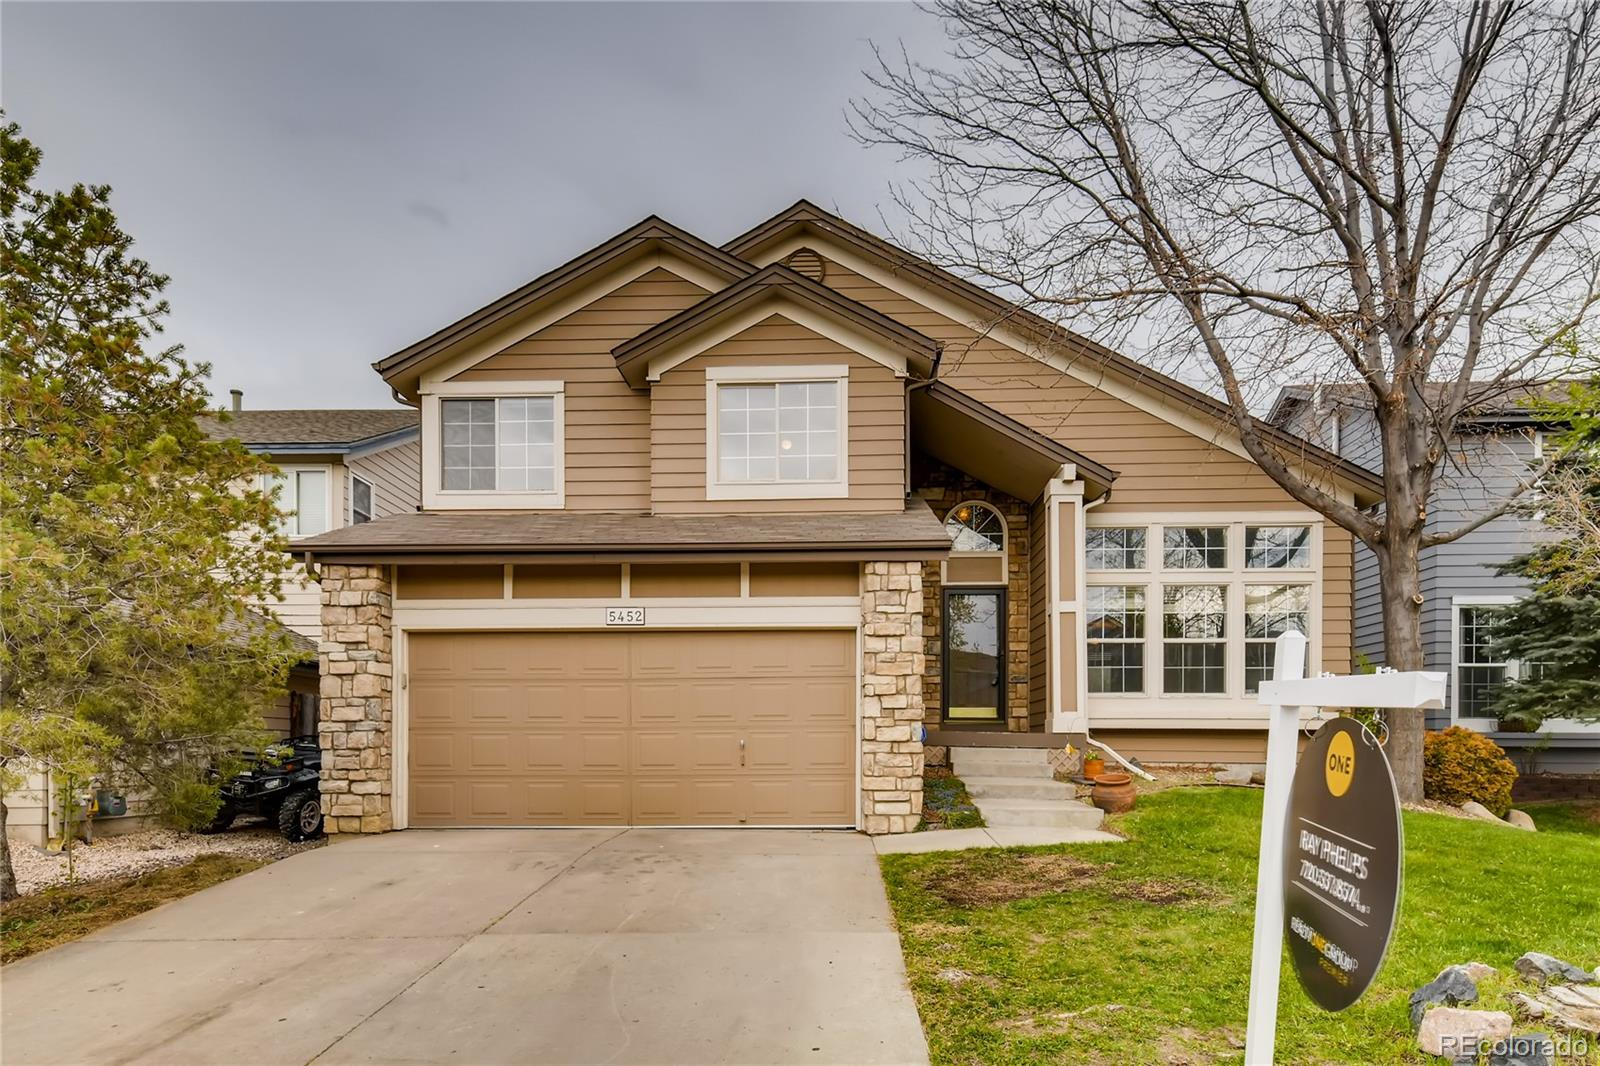 Photo of 5452 S Cathay Way, Centennial, CO 80015